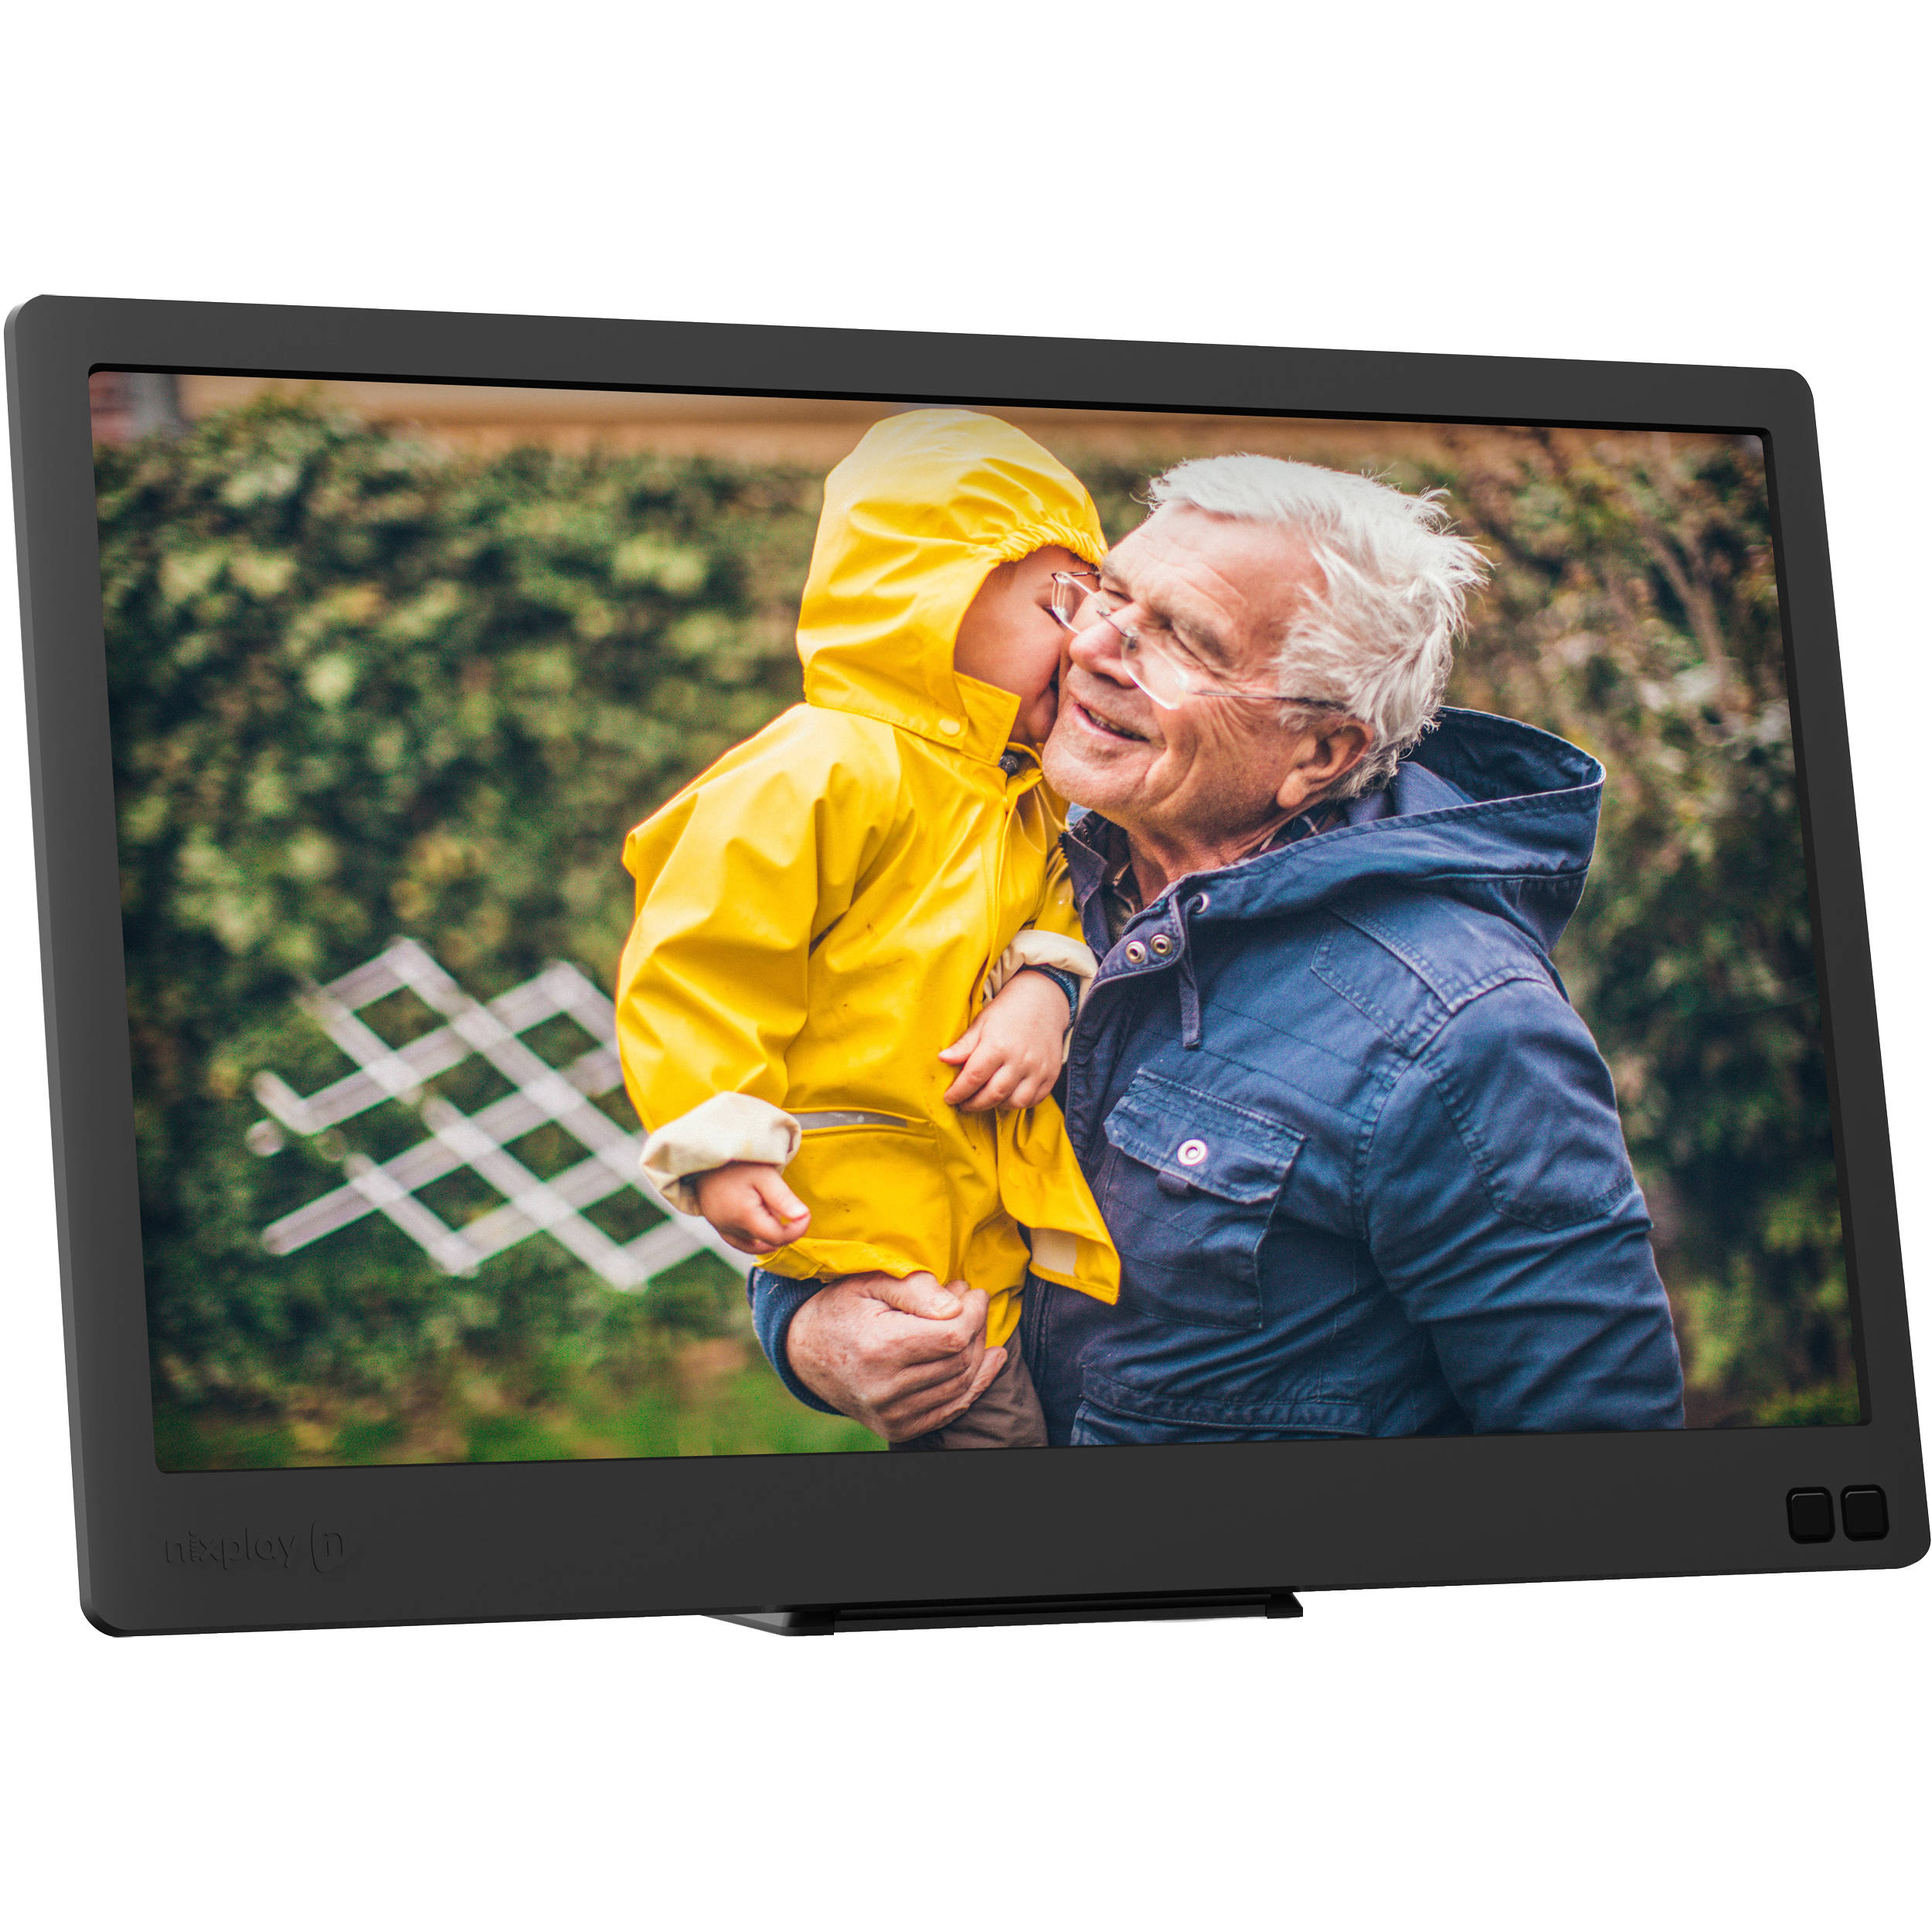 nixplay nixplay edge cloud wifi digital picture frame 13 - Electronic Picture Frames